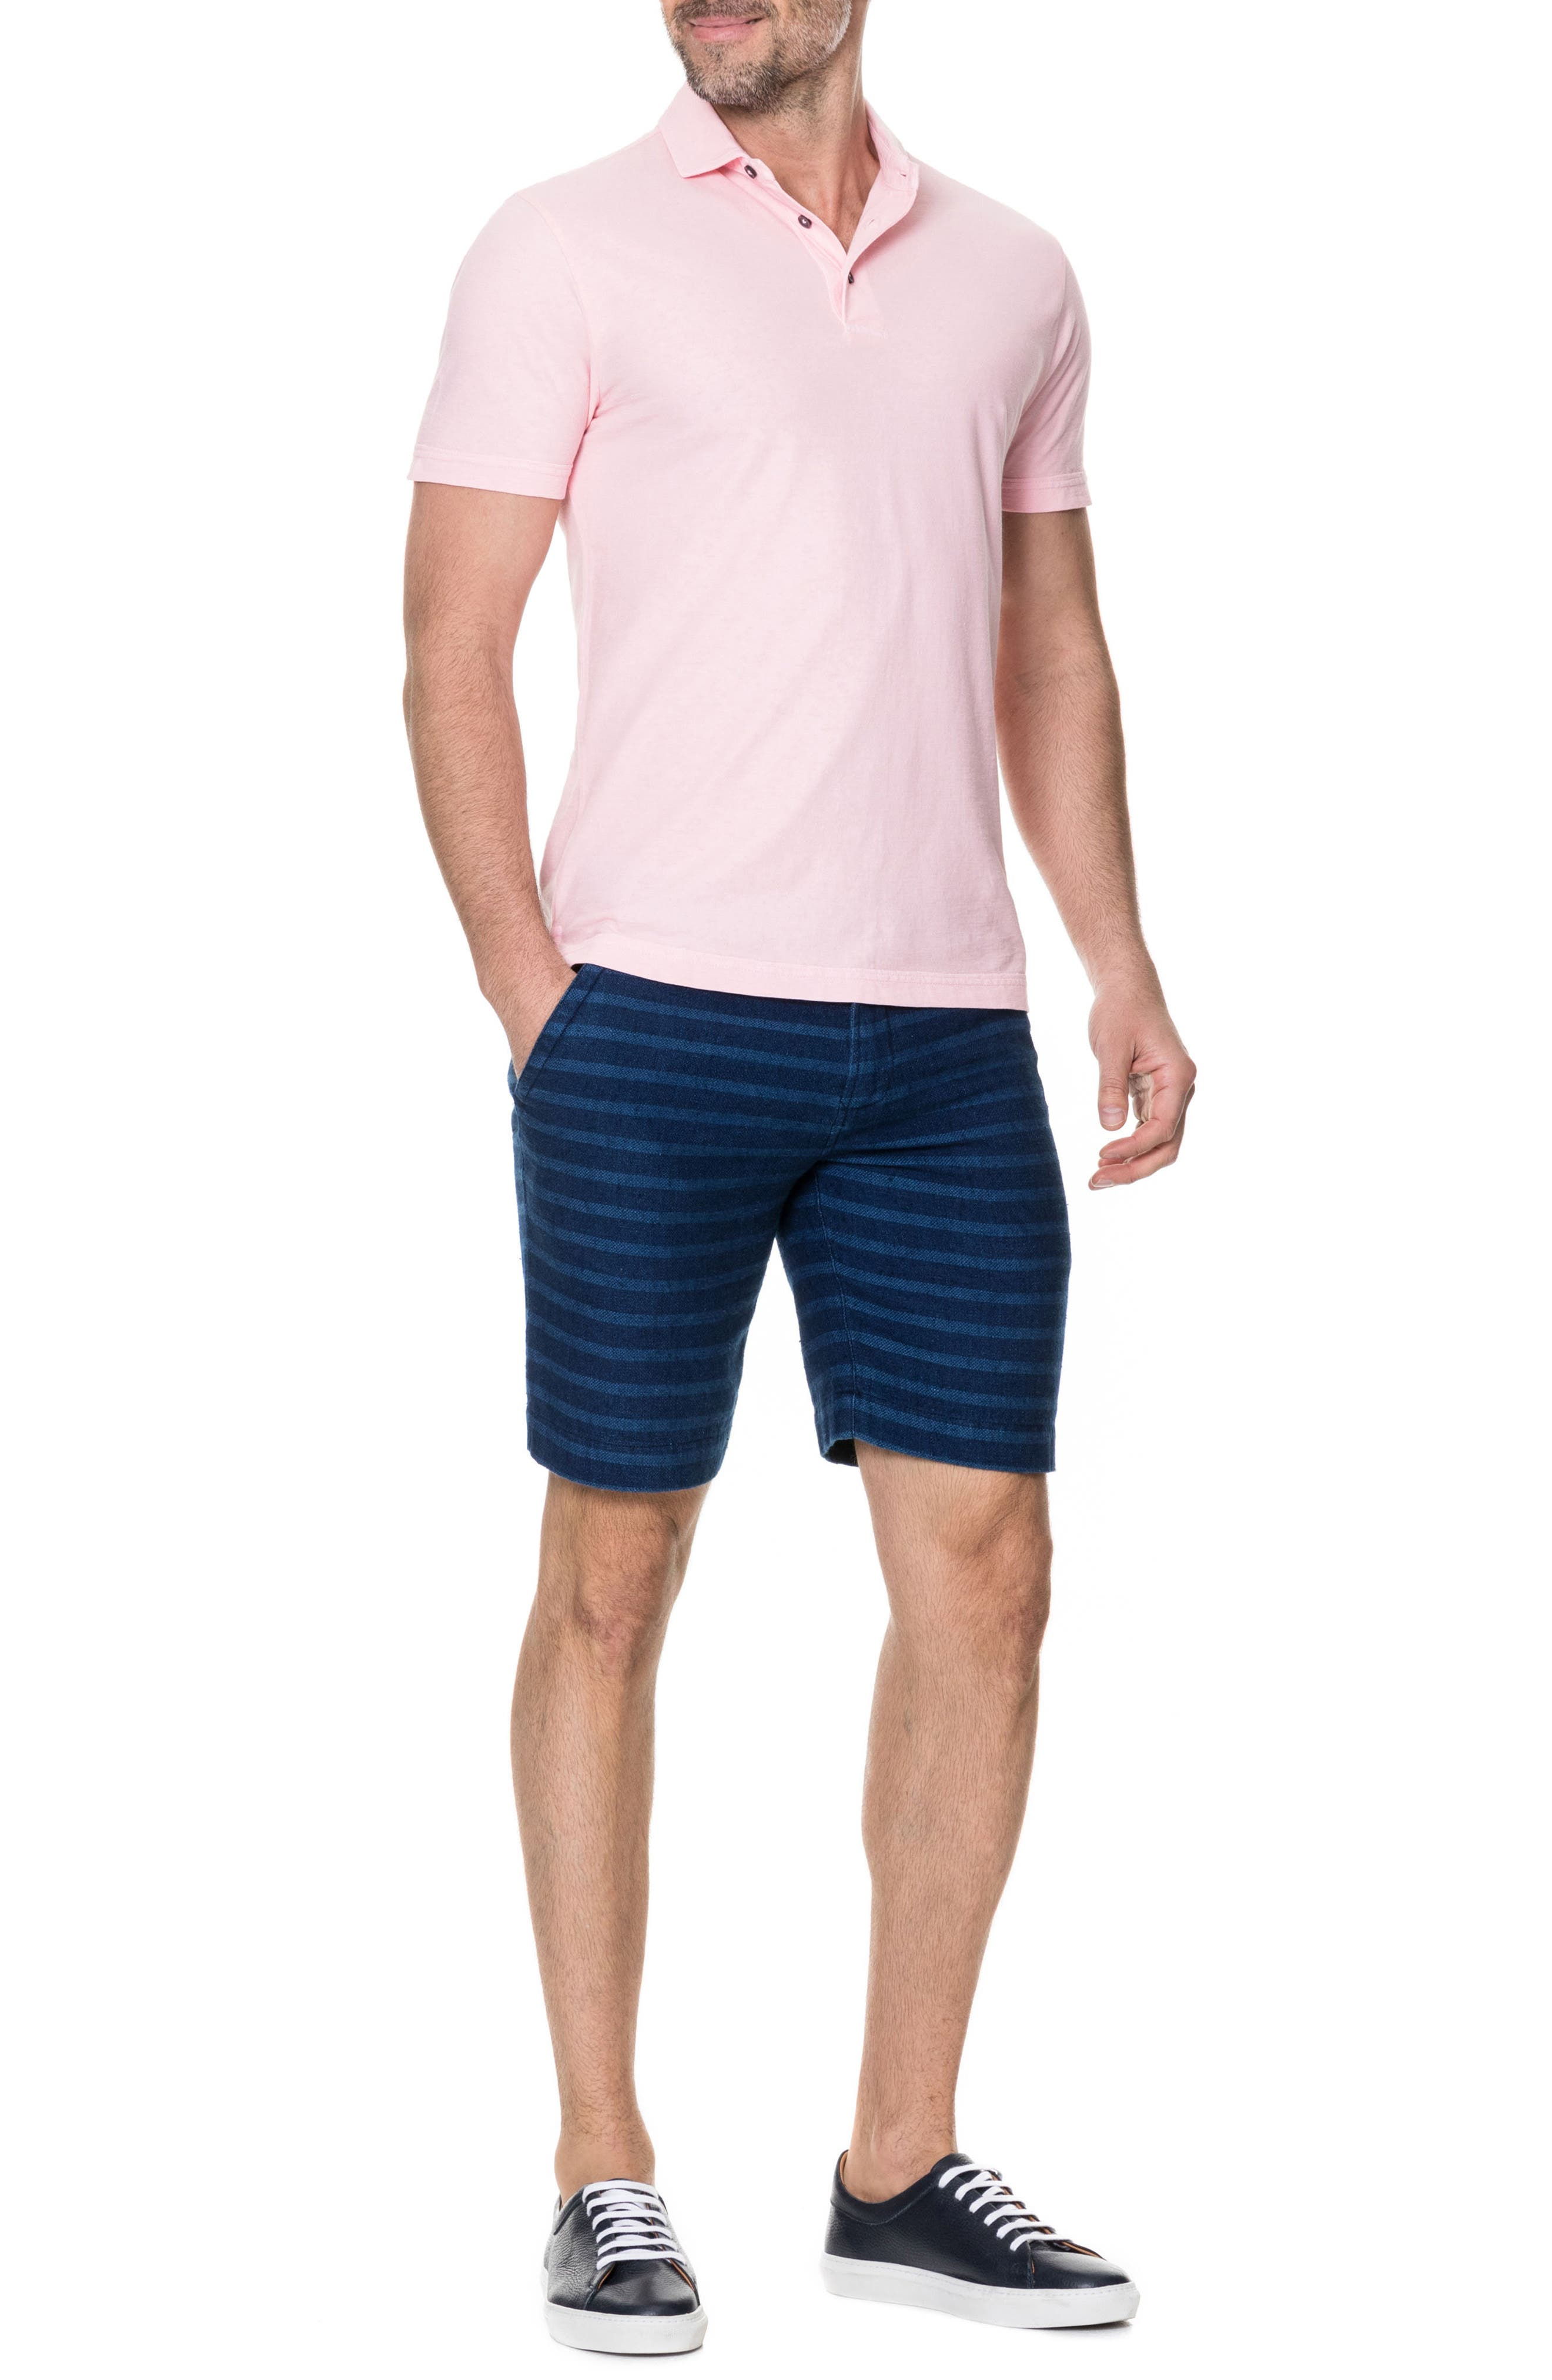 Wilsons Bay Sports Fit Polo,                             Alternate thumbnail 5, color,                             ROSE